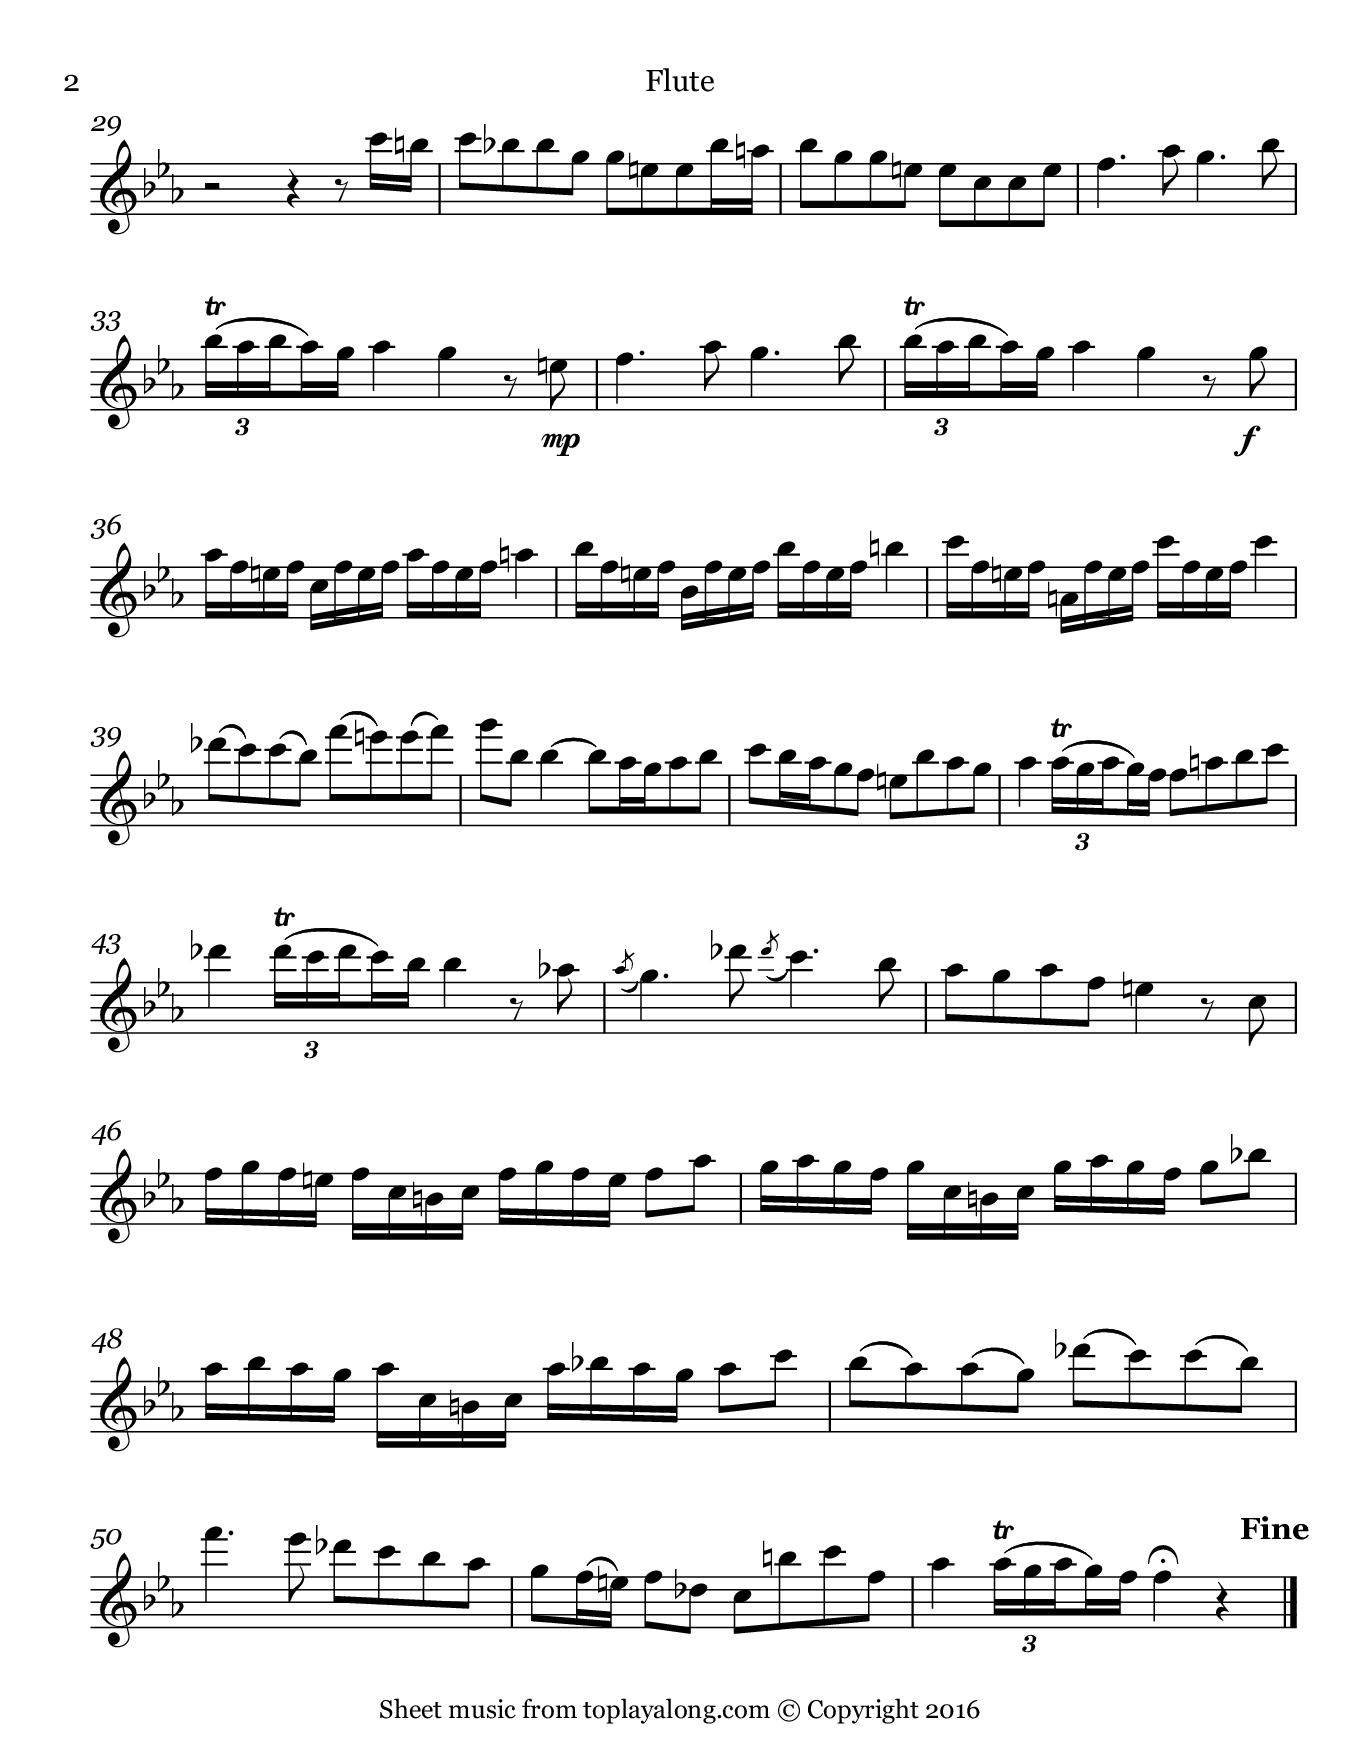 Sonata in F minor (II. Allegro) by Telemann. Sheet music for Flute, page 2.